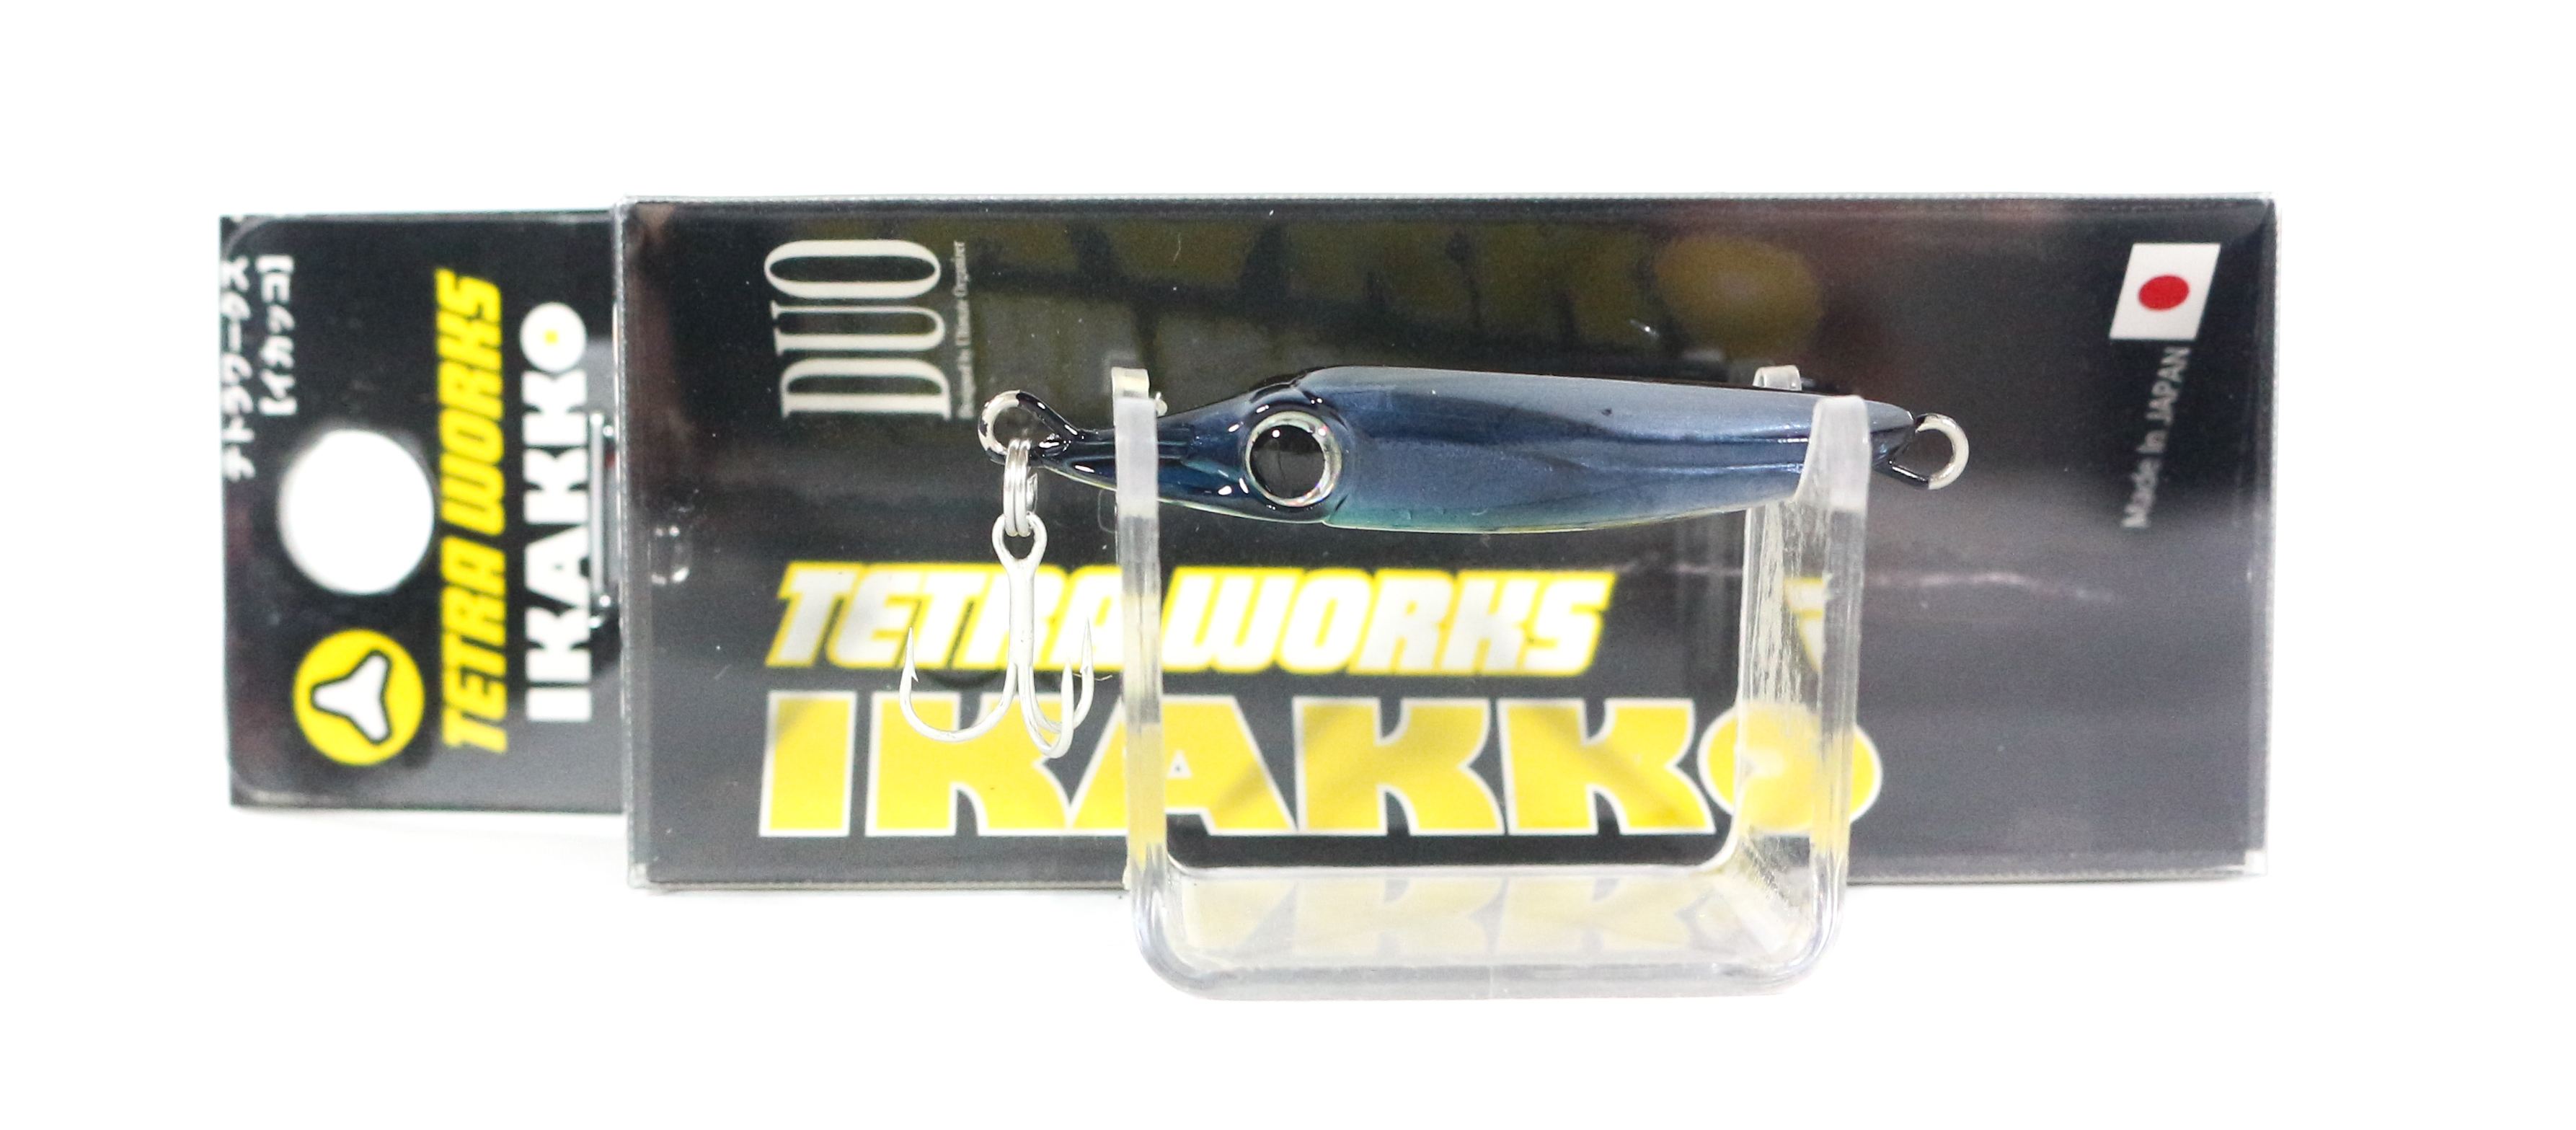 Duo Tetra Works Ikakko 38 mm Sinking Lure CCC0412 (5383)